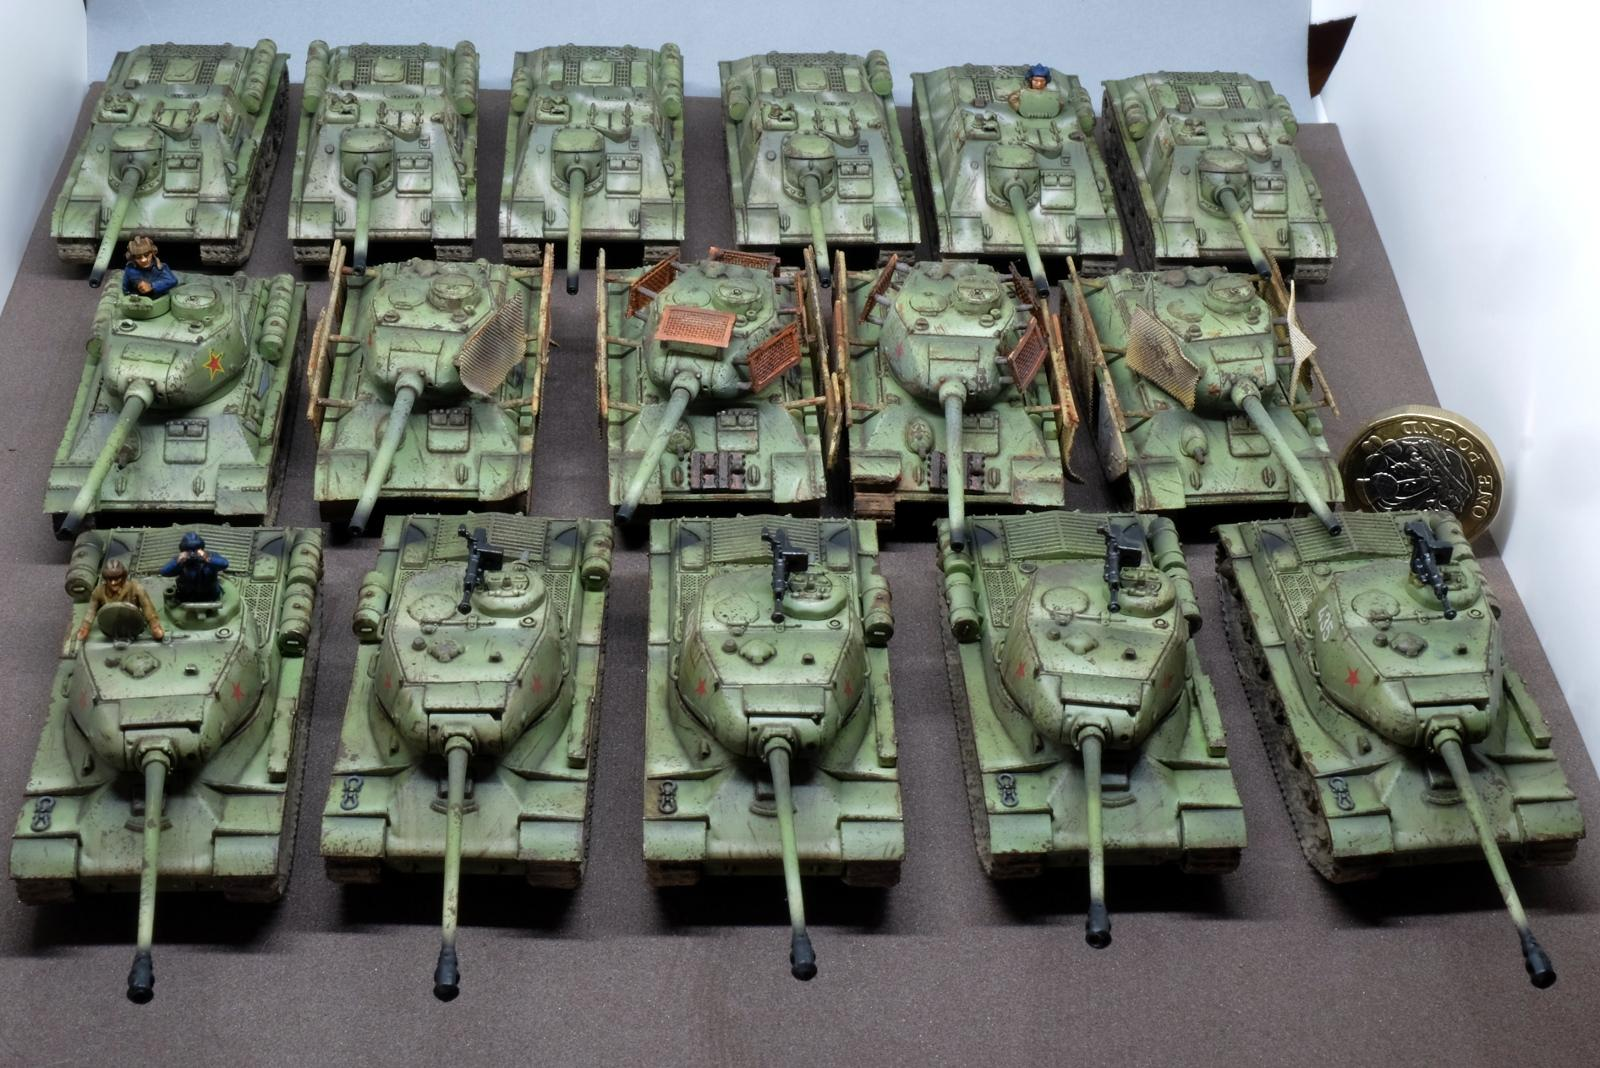 1/100, Army, Flames Of War, Historical, Russians, Soviet